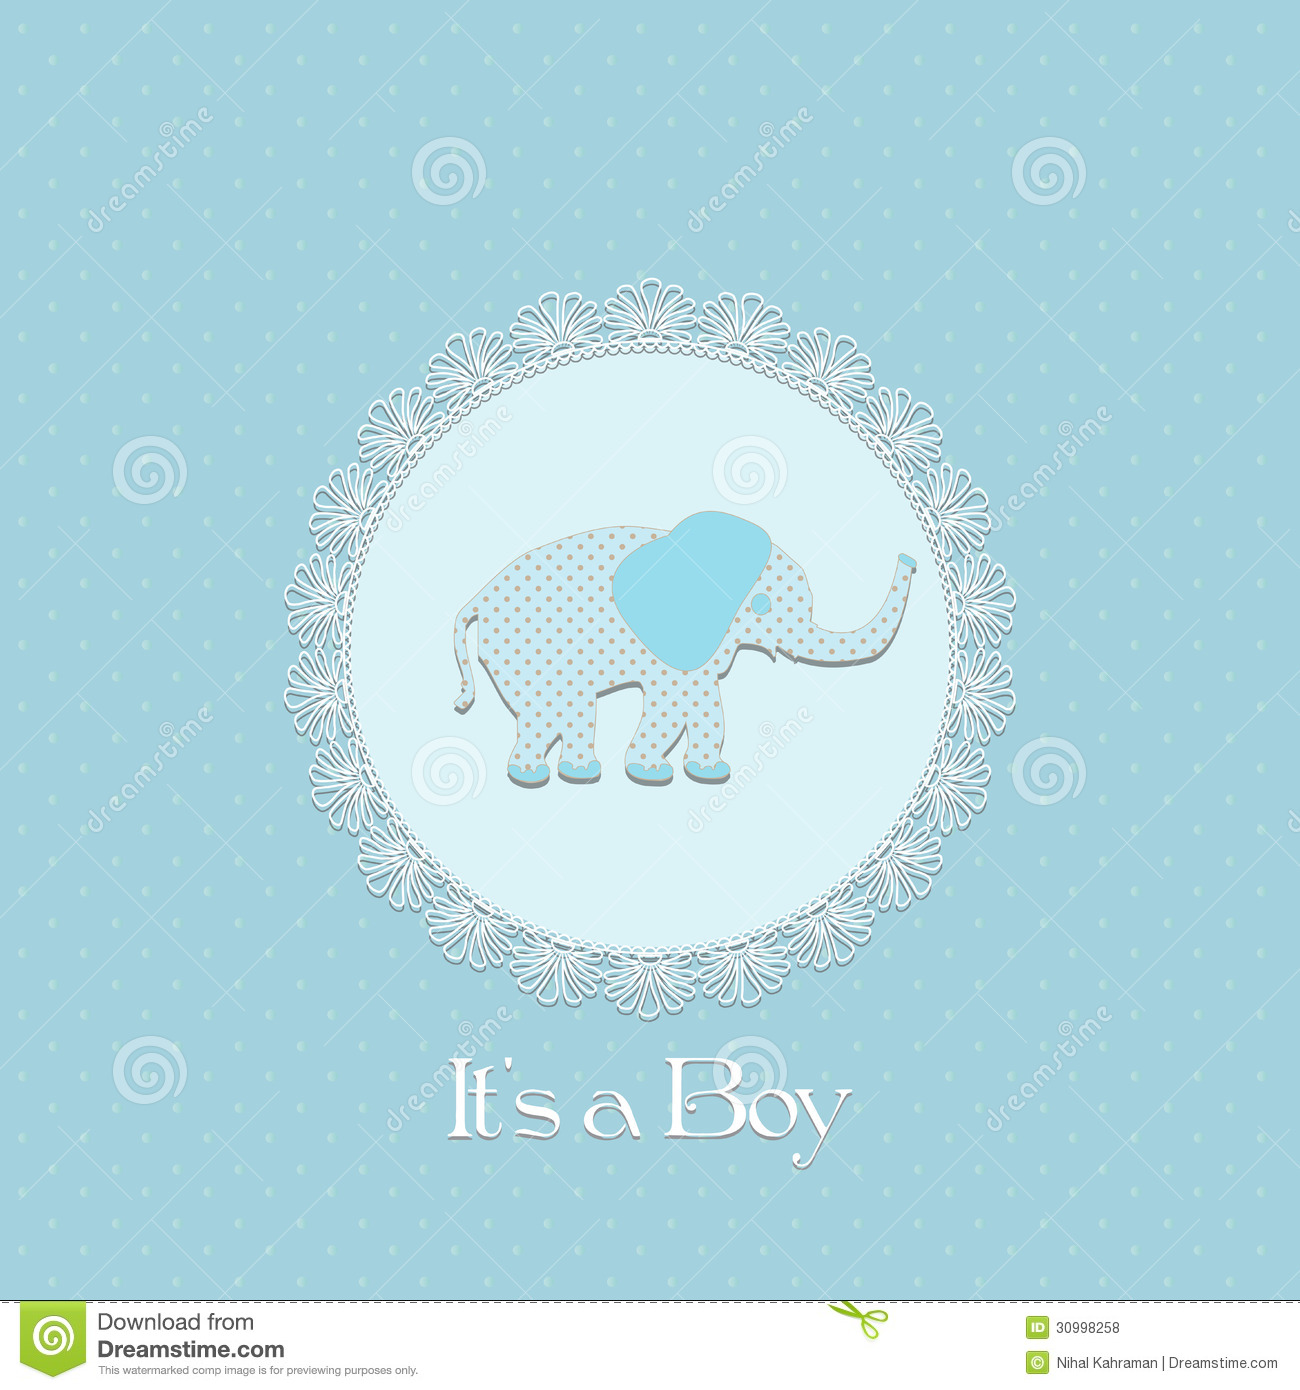 Baby Shower Card For Baby Boy, With Elephant And Lace Frame